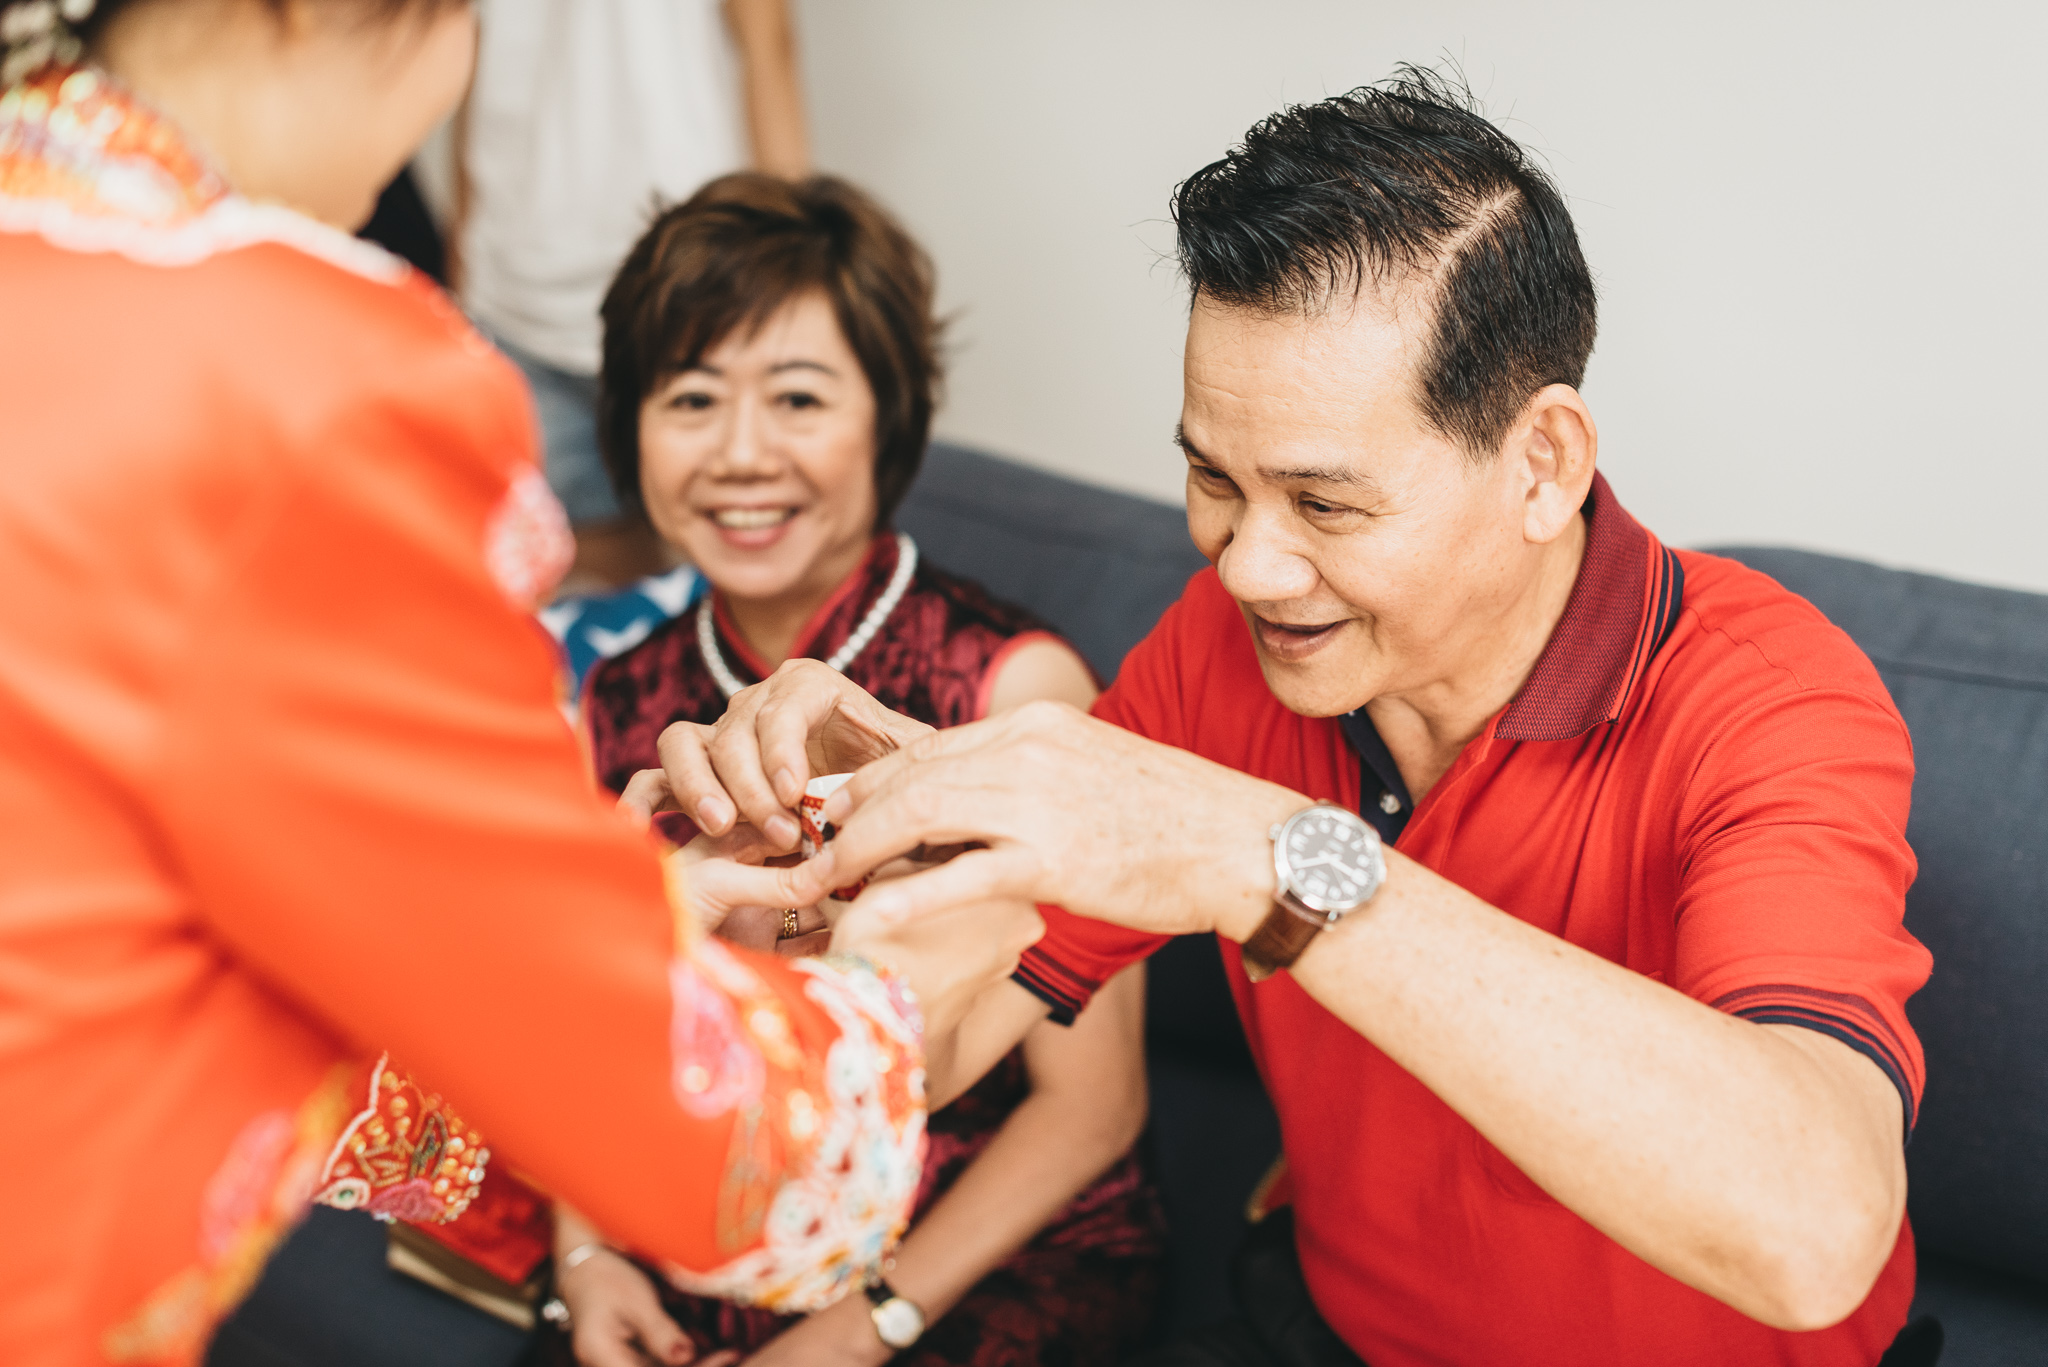 Alice & Wei Bang Wedding Day Highlights (resized for sharing) - 062.jpg